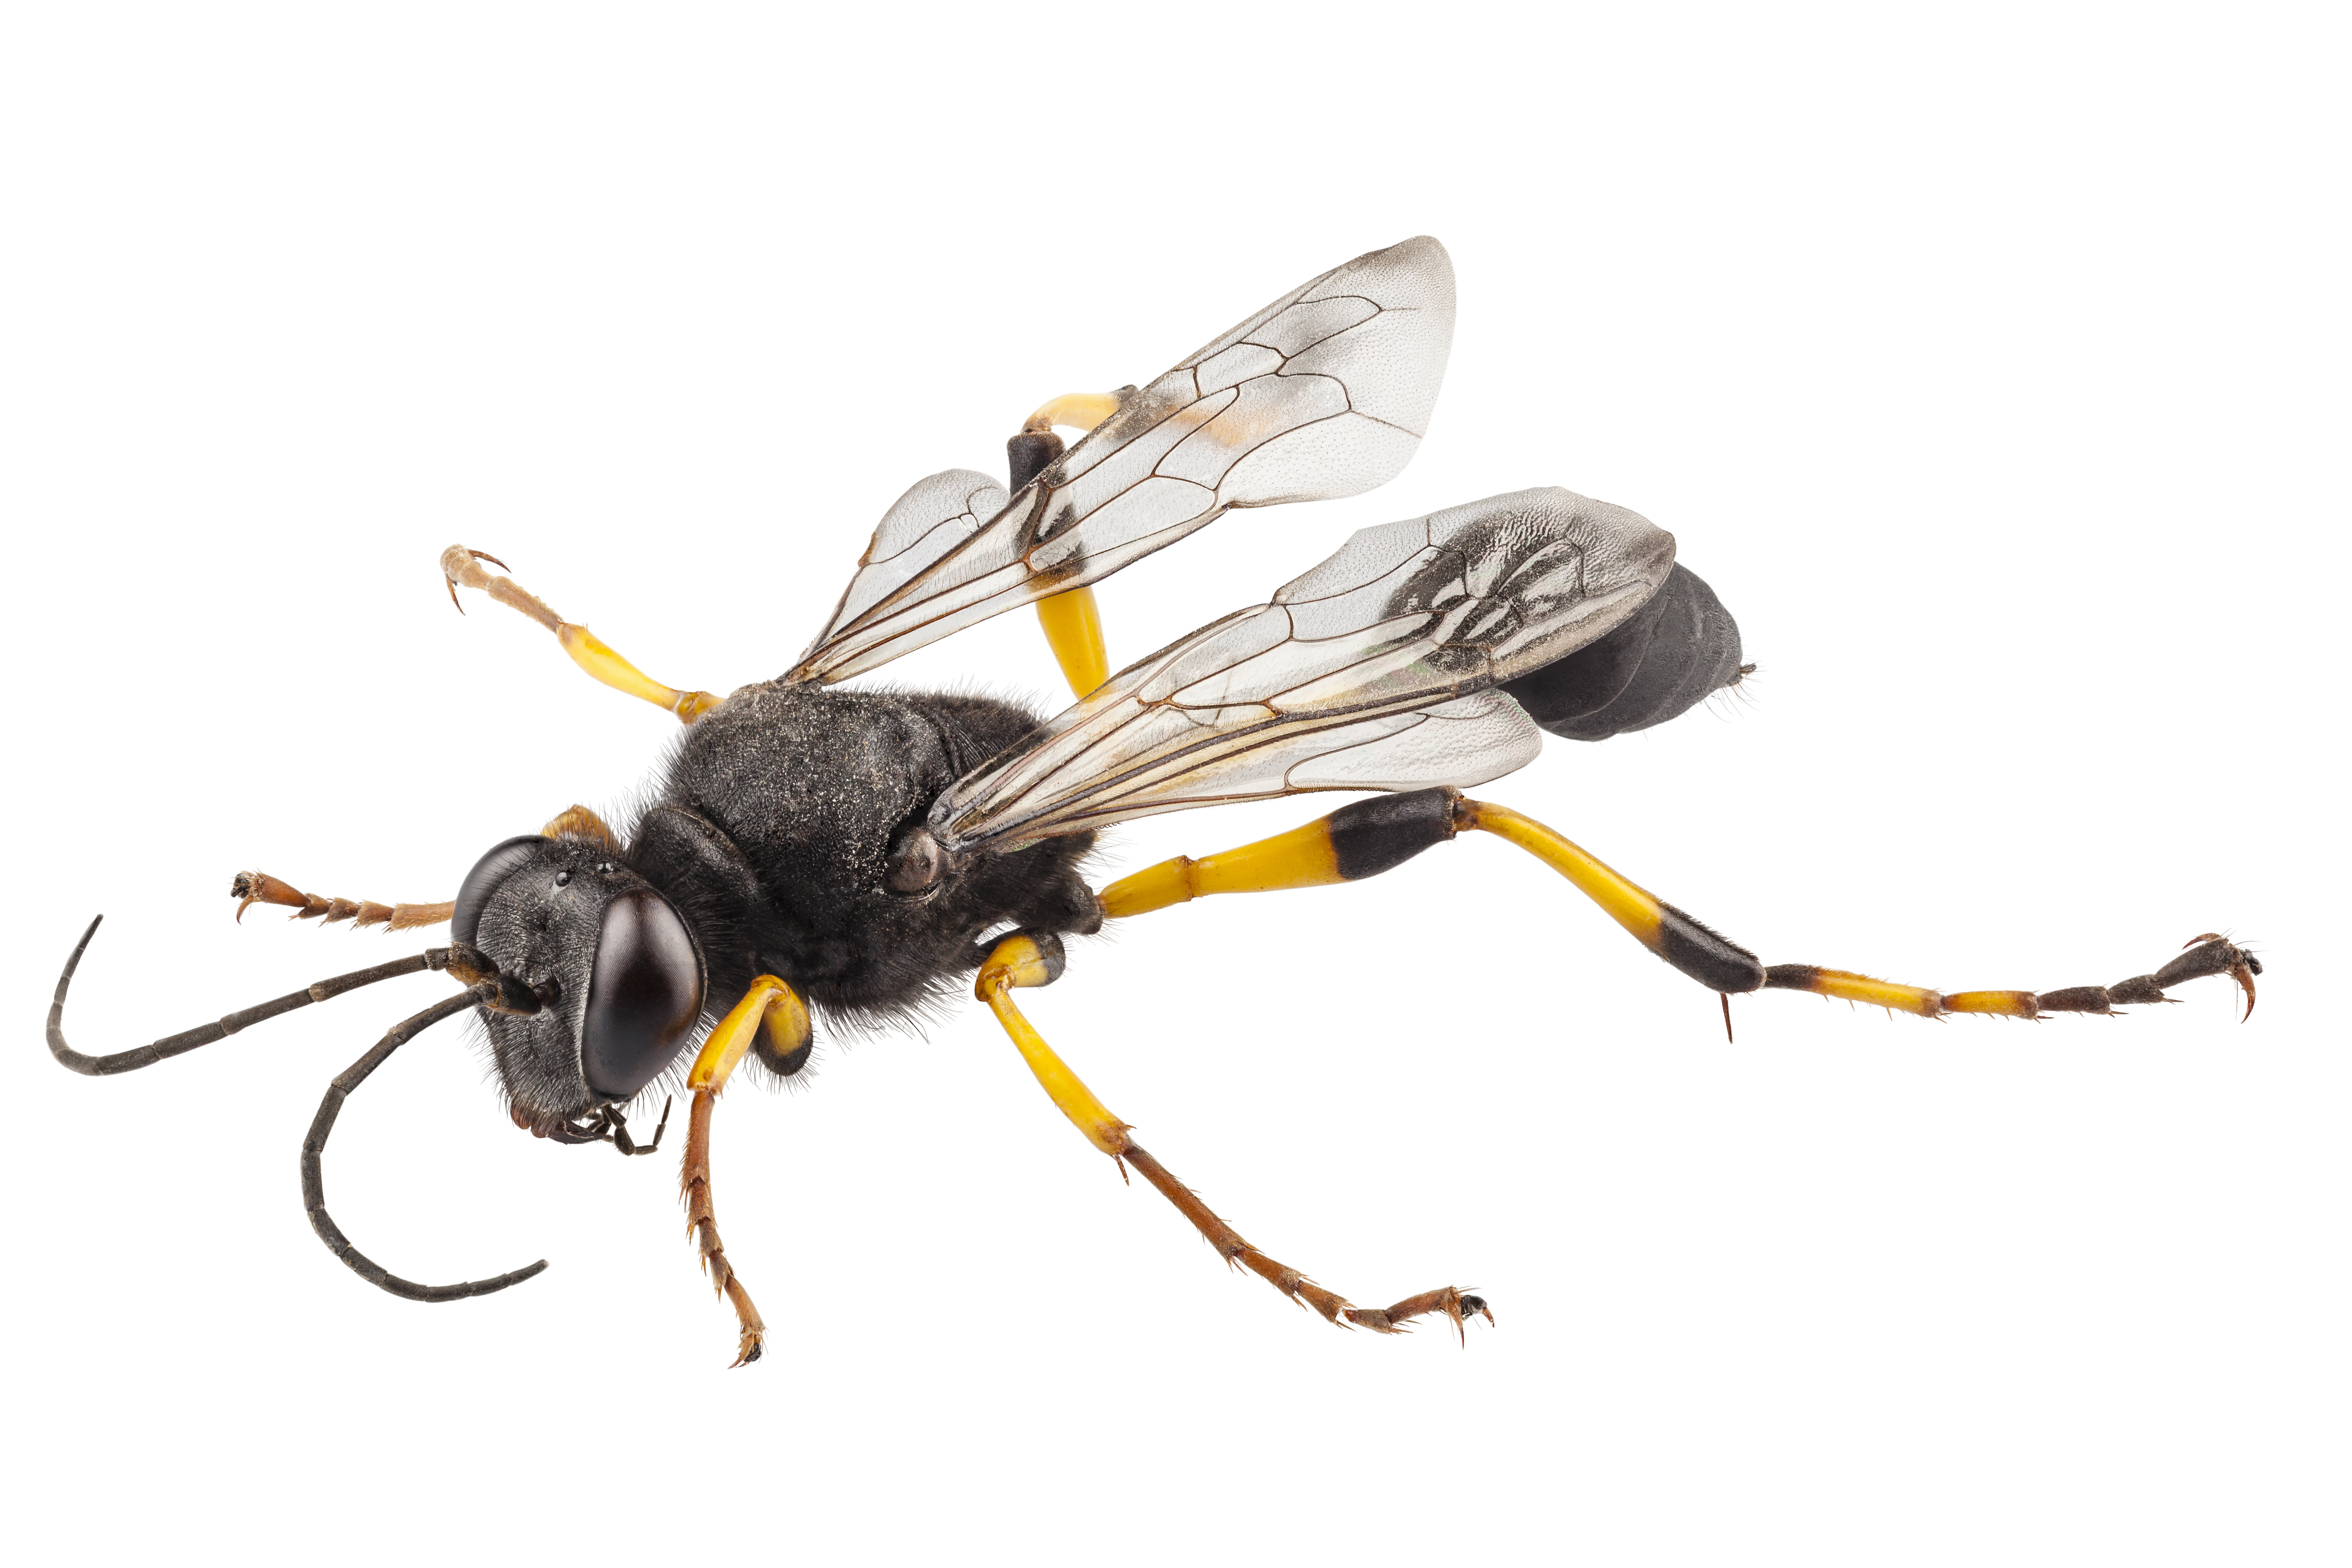 wasp Get rid of wasp and wasps, products and expertise you need for residential and commercial control of hornets and wasps.